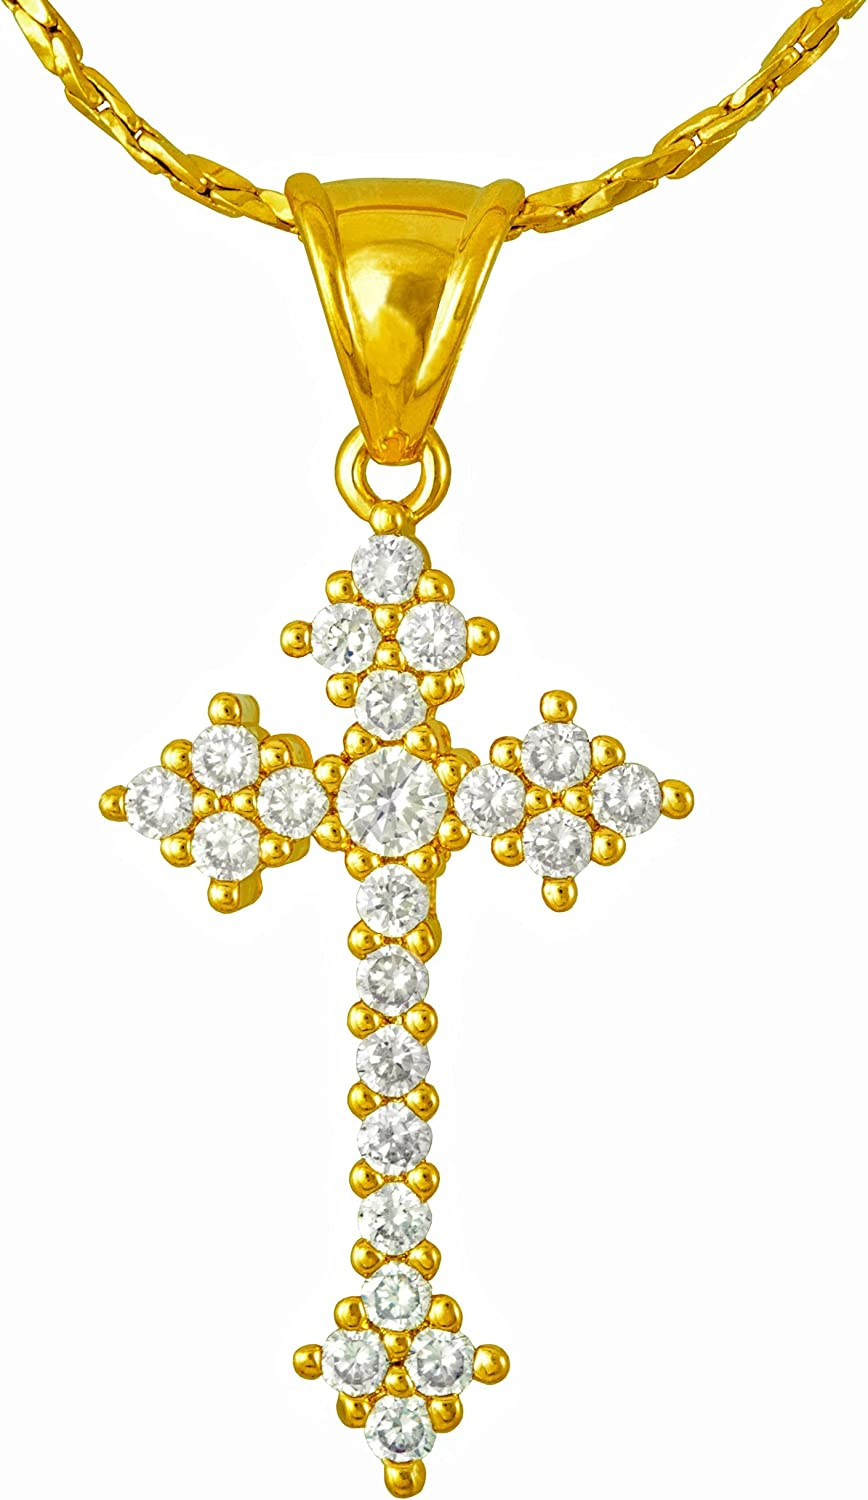 Lifetime In a popularity Jewelry 22 CZ Stones Cross for Girls and Women Necklace online shopping